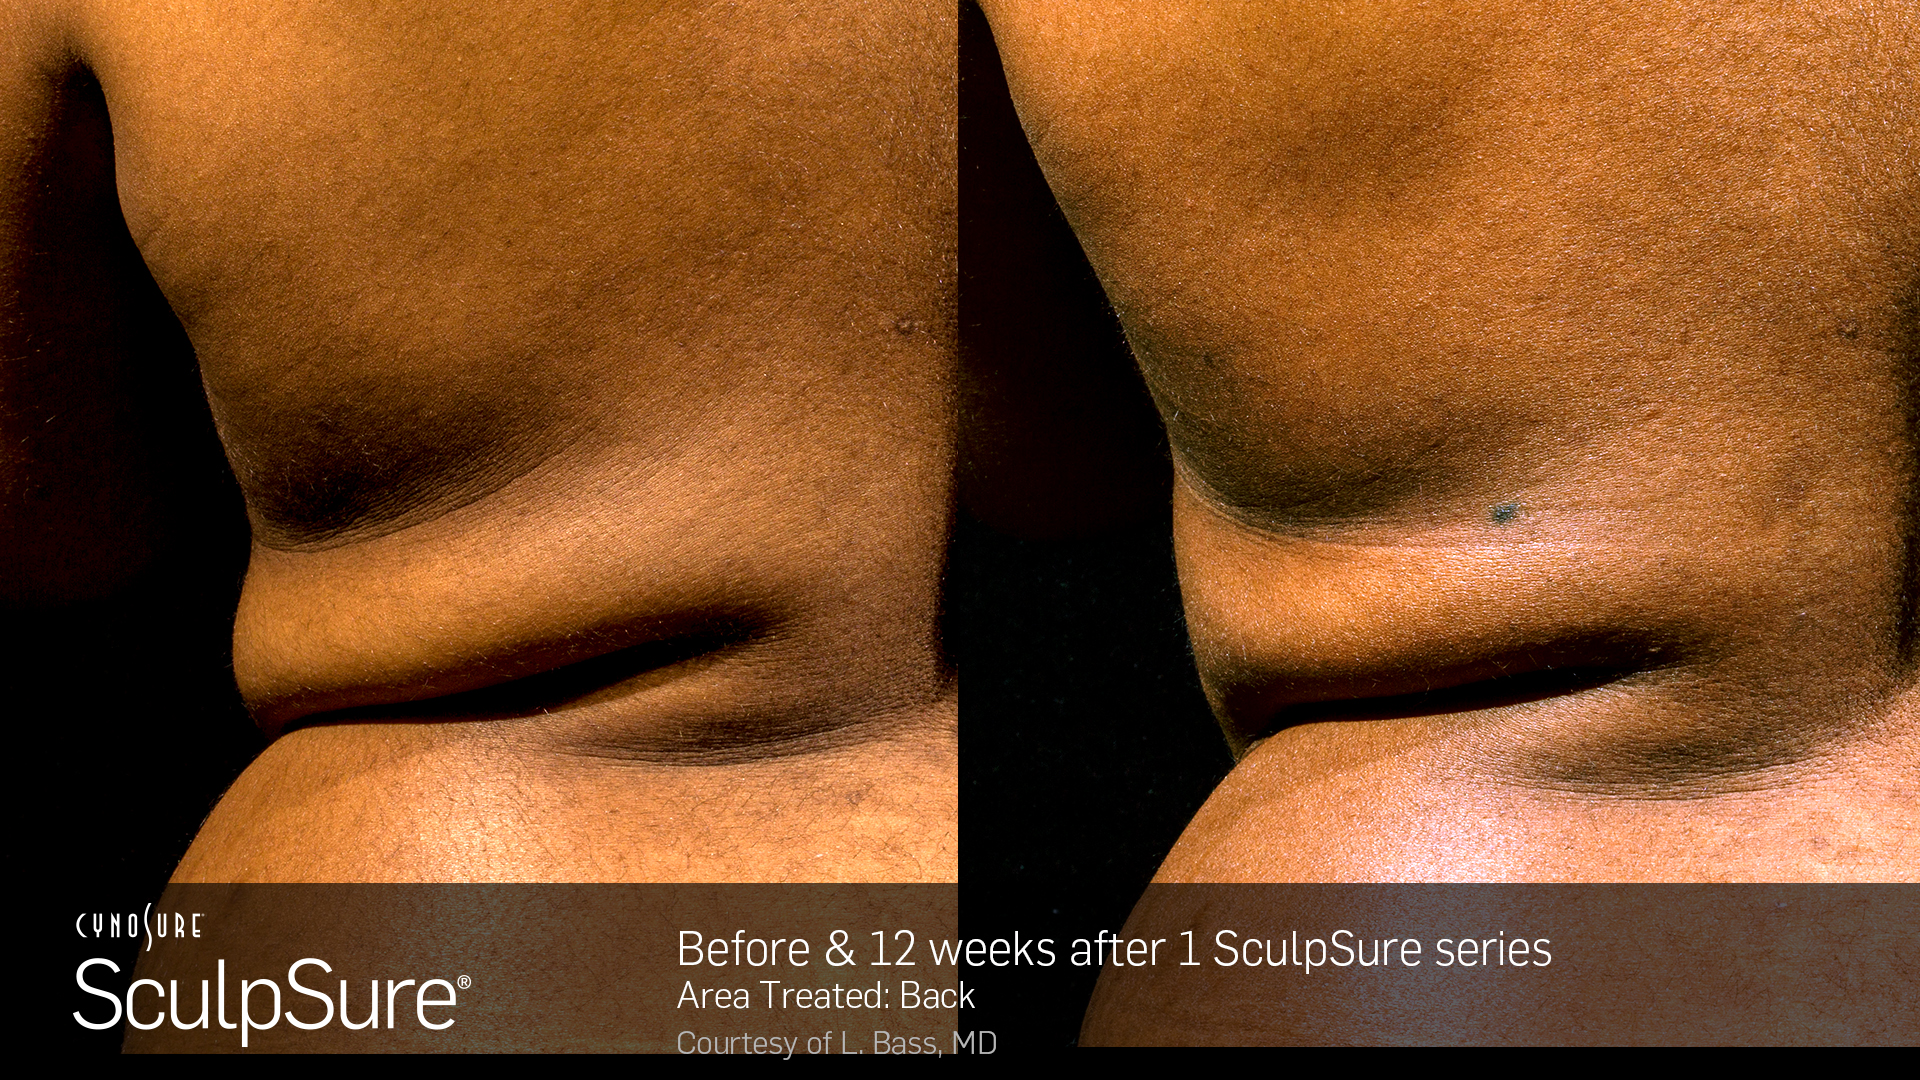 BA_SculpSure_S.Doherty_Back_1tx_12weeks_03_06